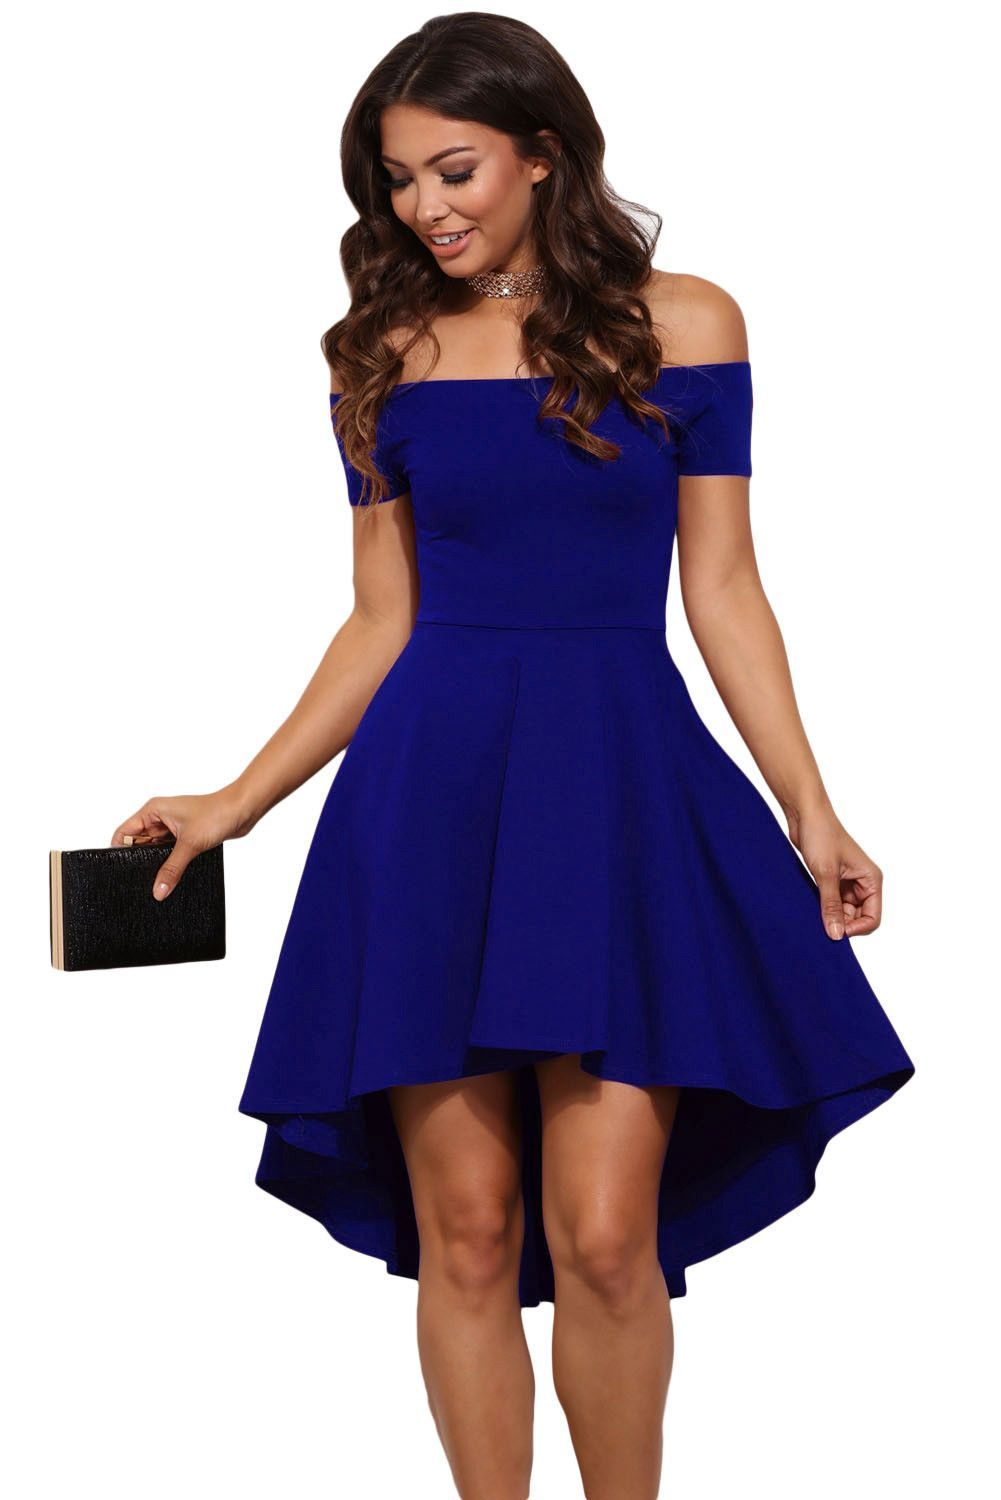 Blue All The Rage Skater High Low Cocktail Dress #modeshe @modeshe ...